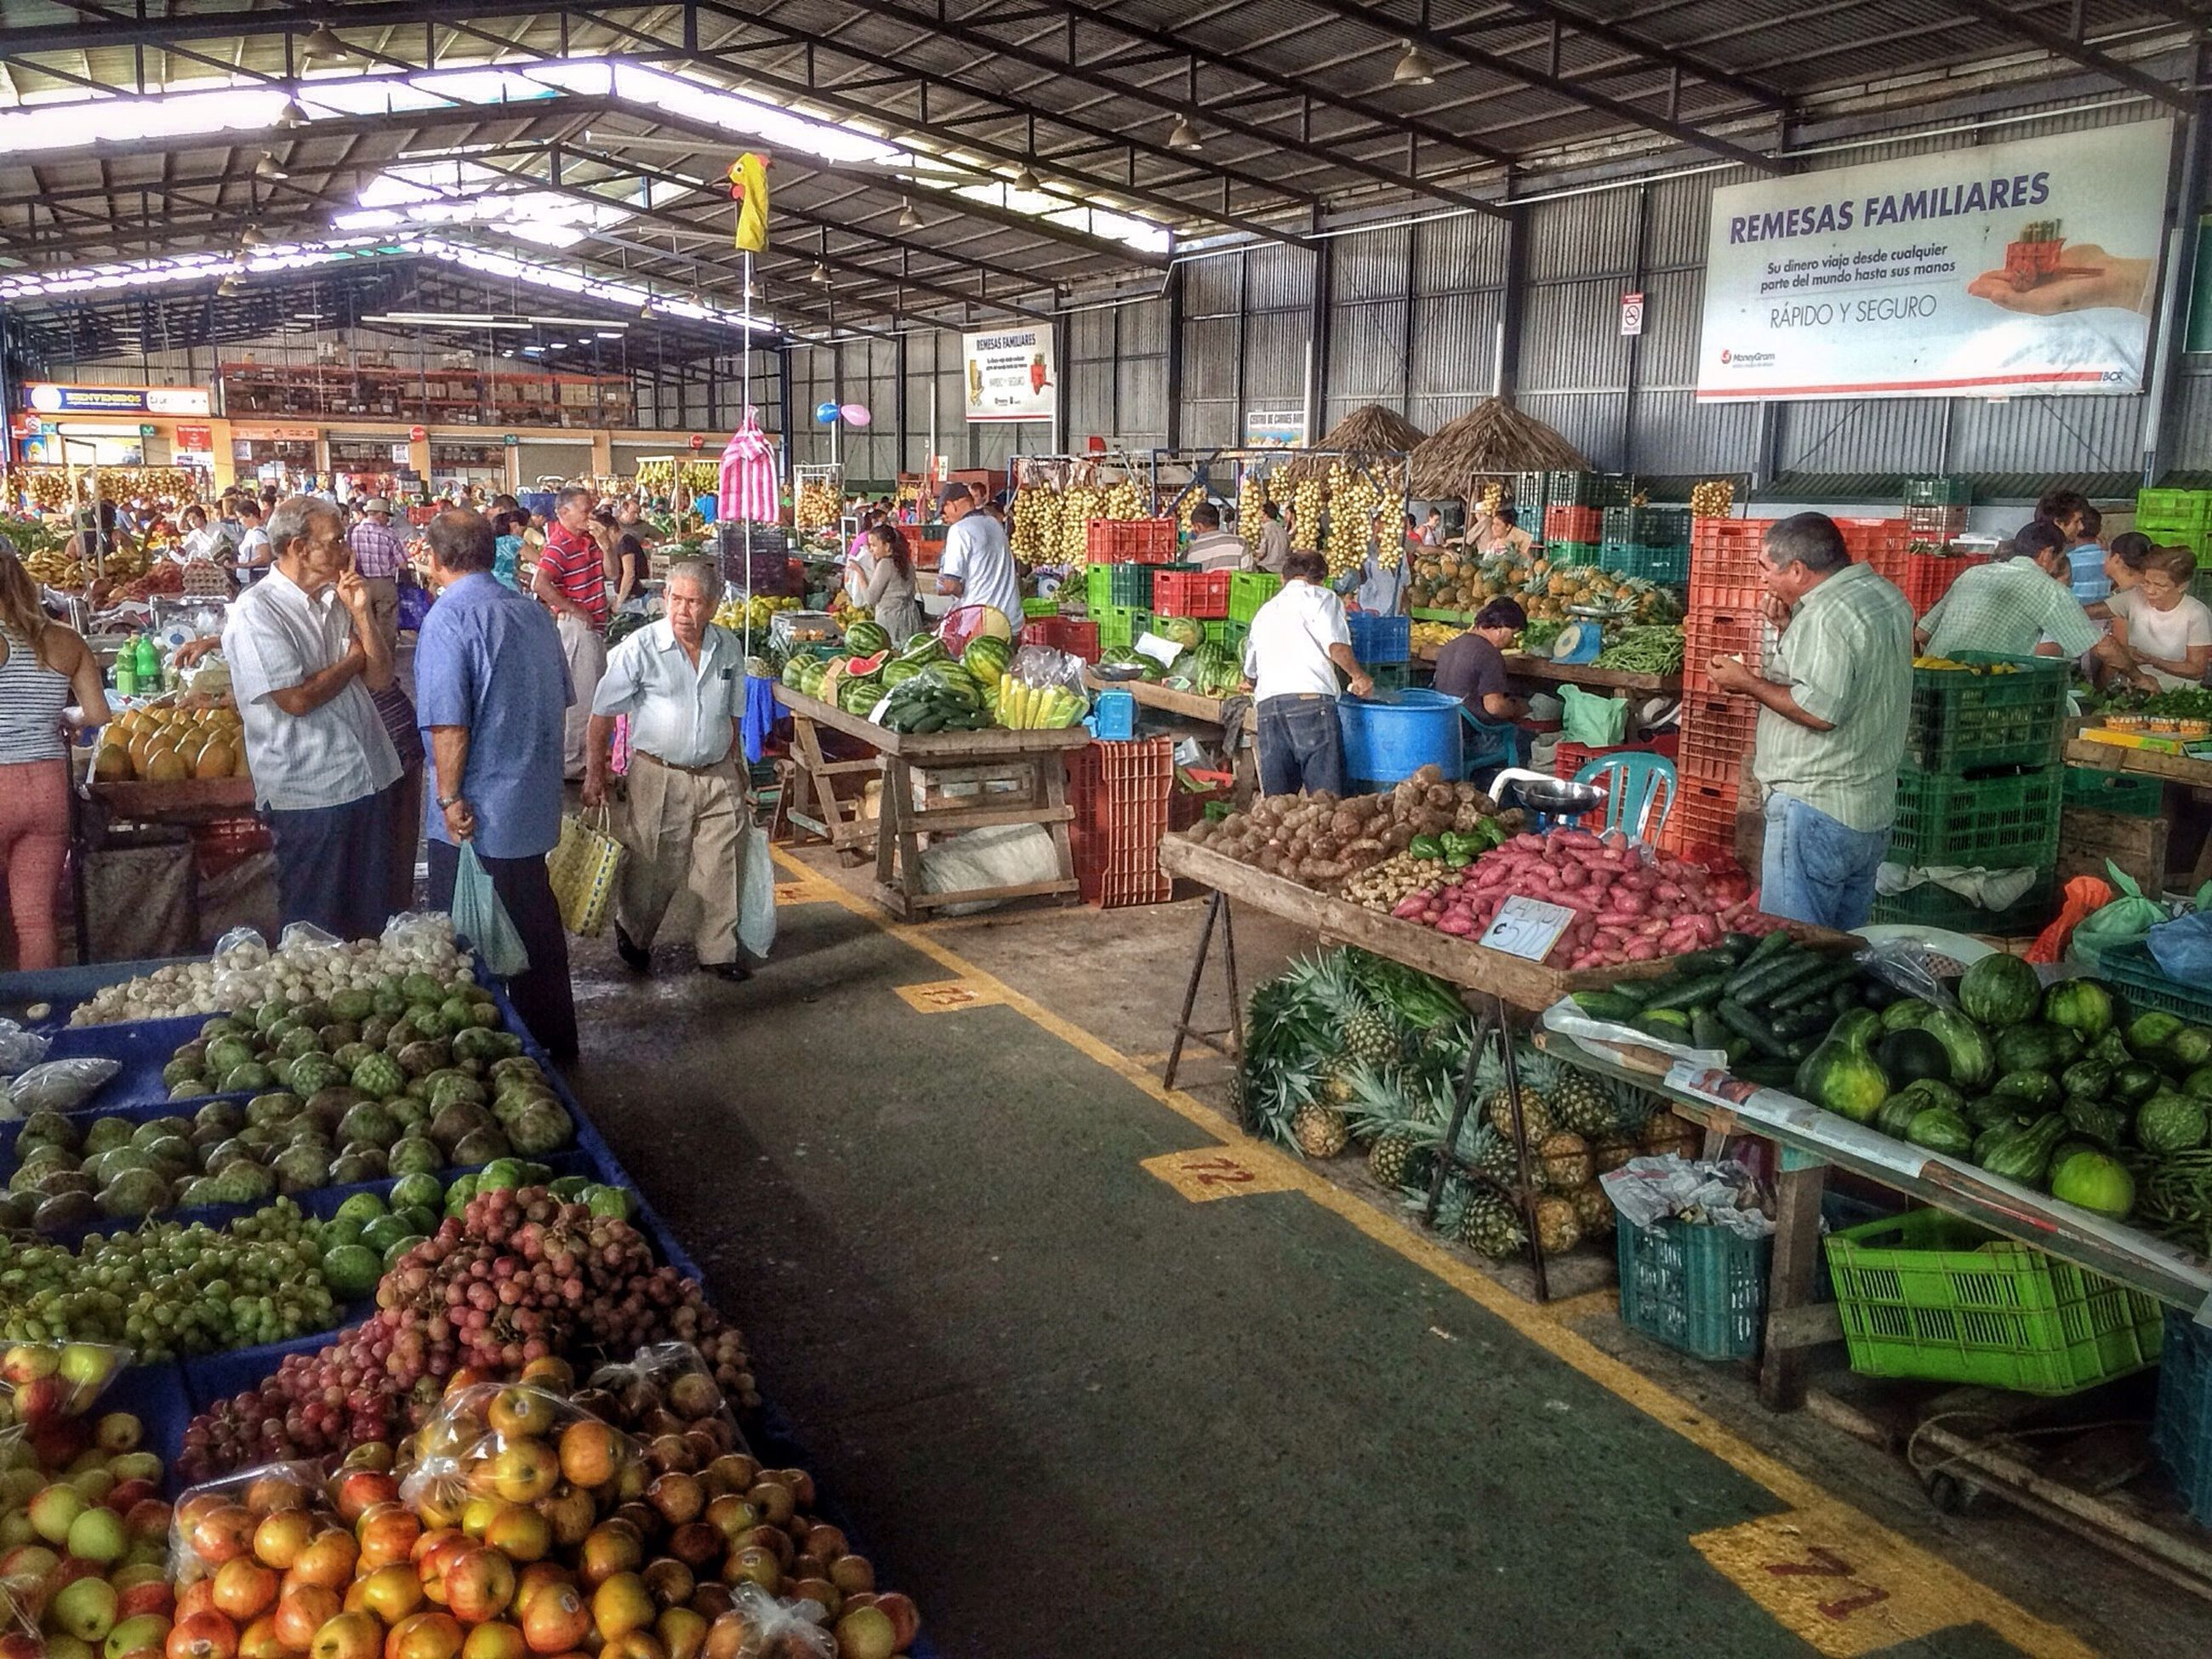 market, for sale, retail, market stall, large group of objects, abundance, building exterior, choice, high angle view, variation, architecture, store, display, built structure, small business, food and drink, sale, city, outdoors, food